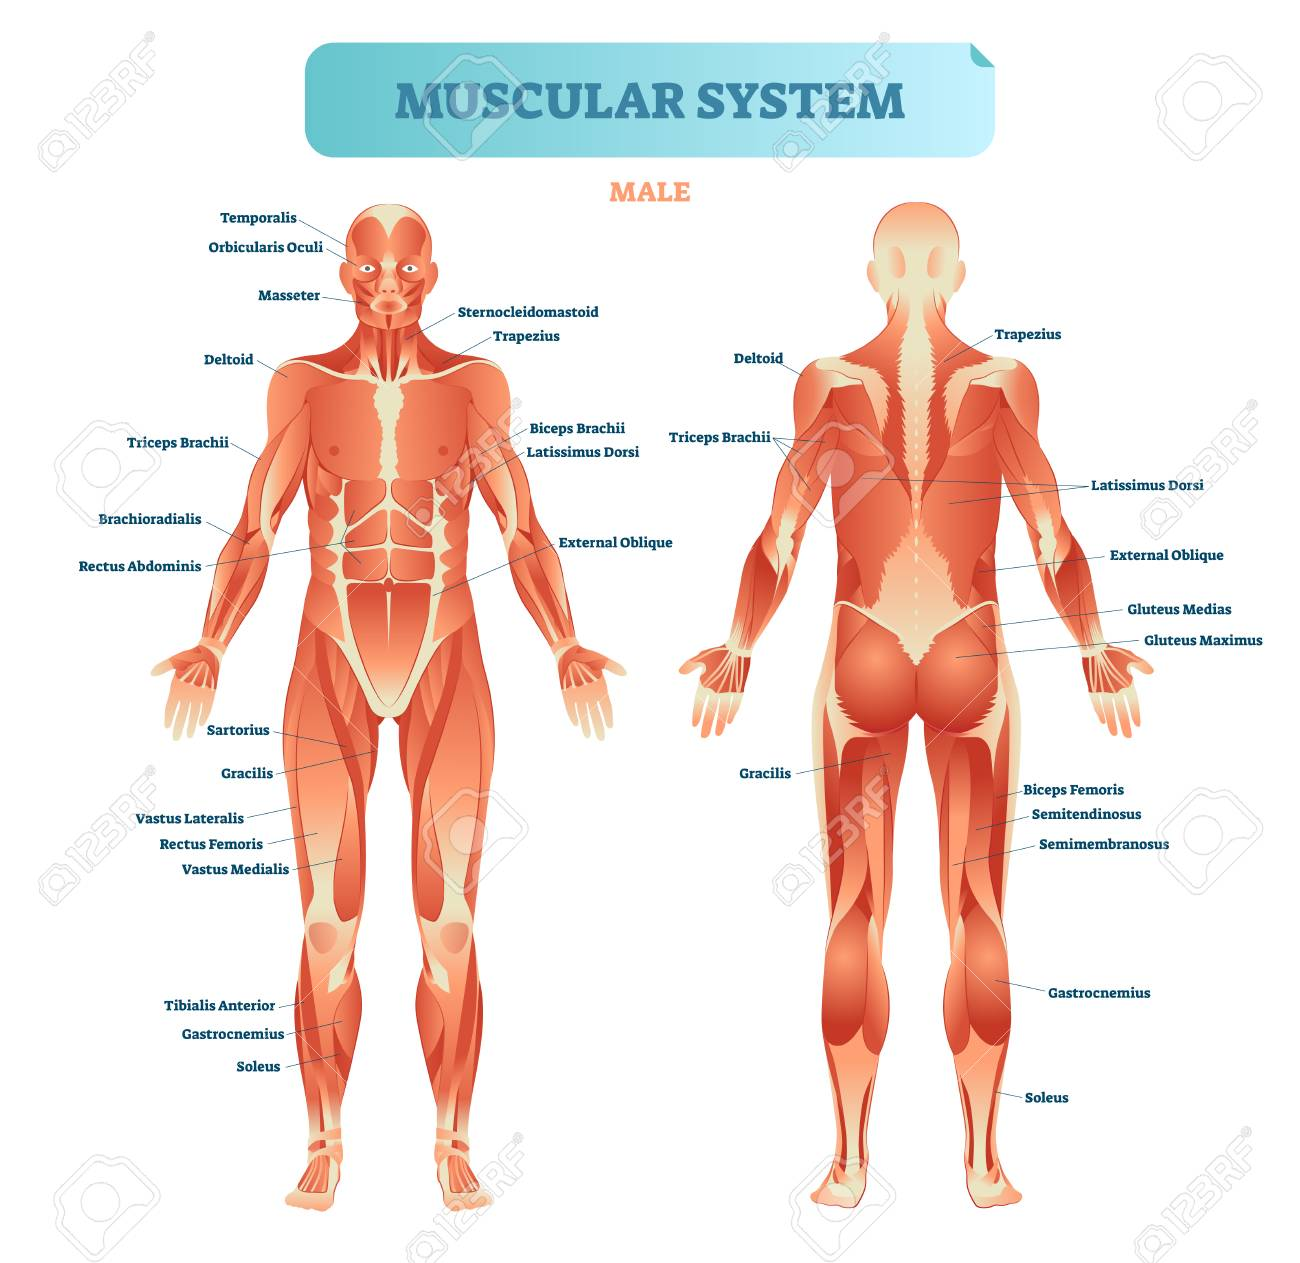 Male muscular system, full anatomical body diagram with muscle scheme, vector illustration educational poster. - 100867245